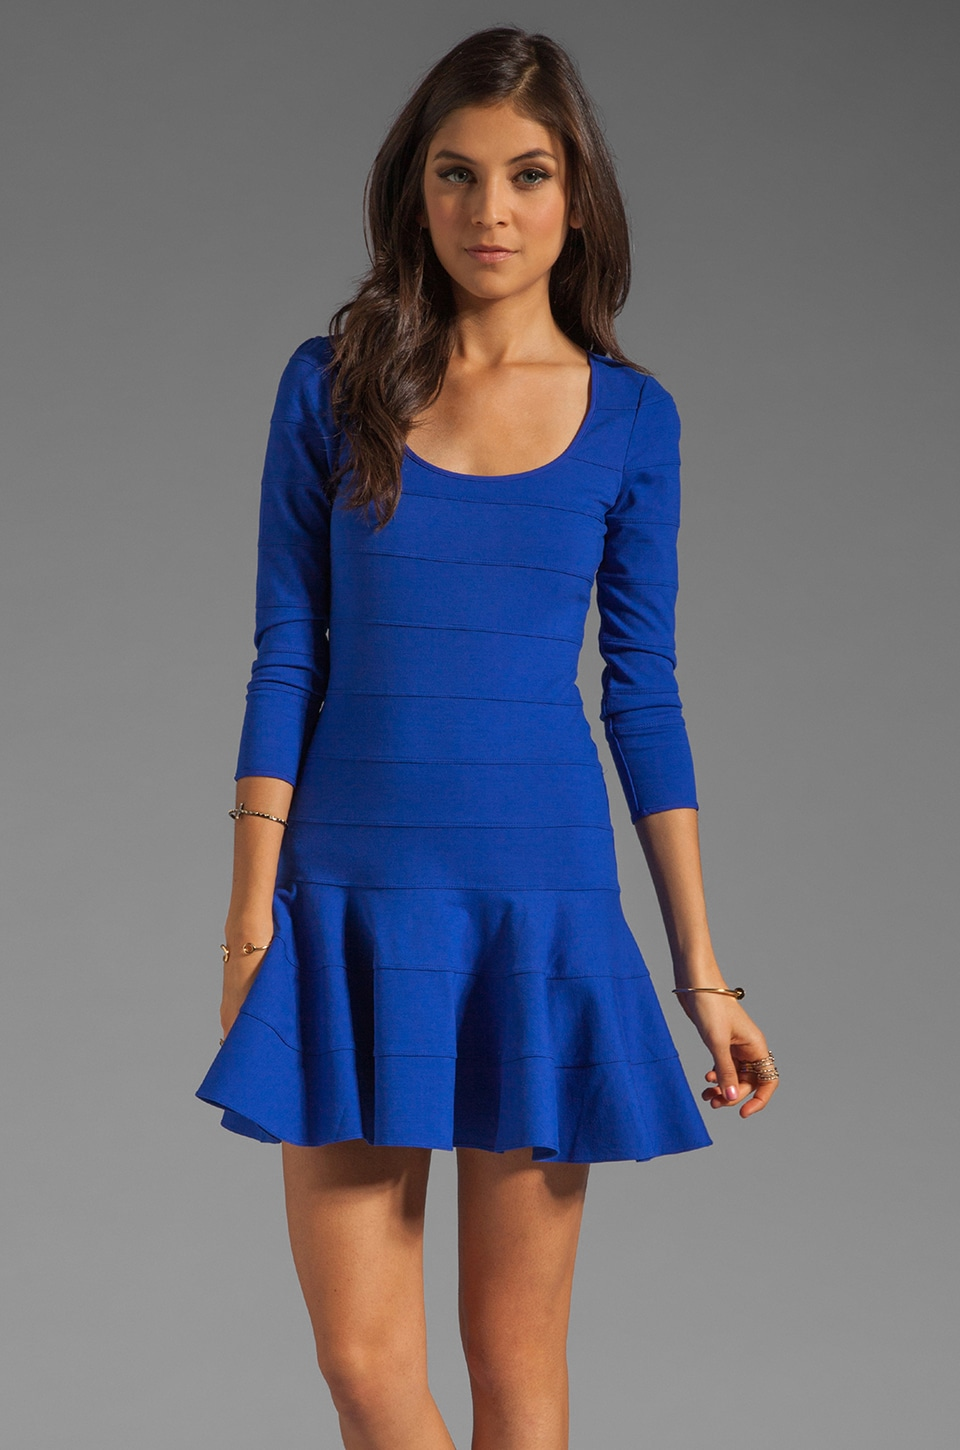 Juicy Couture Pieced Fluid Ponte Dress in Seaside